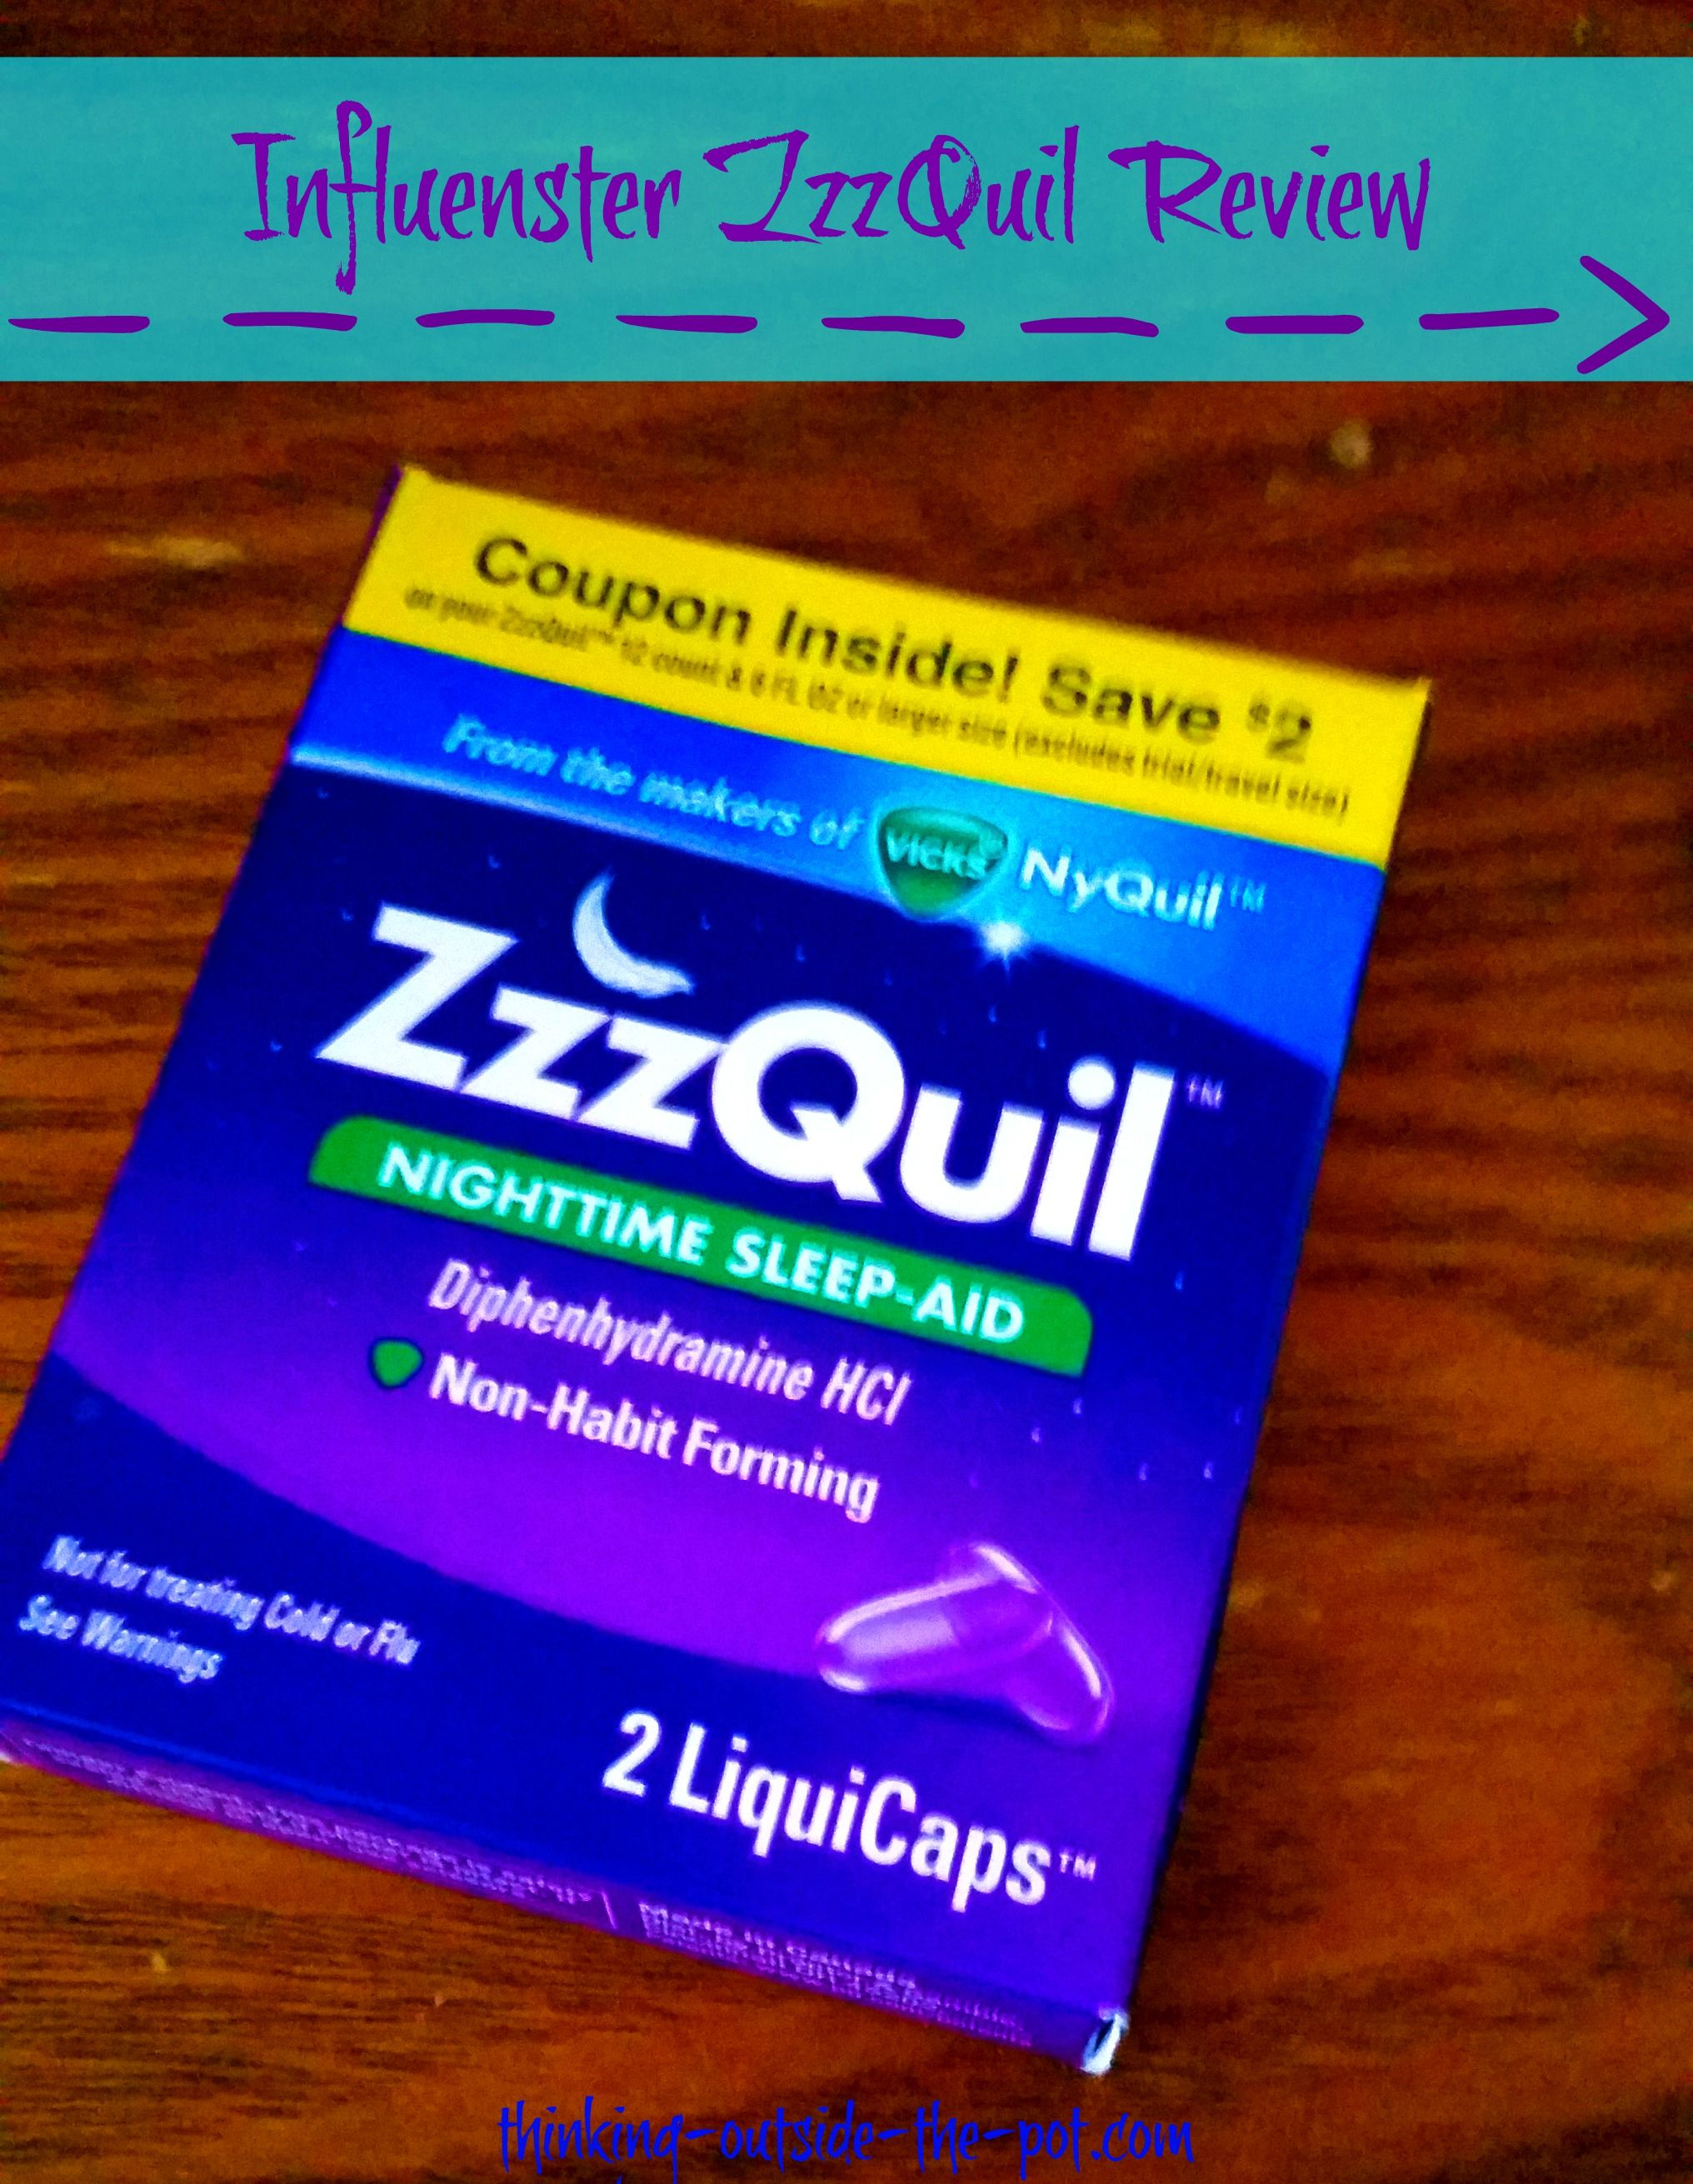 Zzzquil Influenster Box Thinking Outside The Pot Influenster Box Nighttime Sleep Aid Influenster